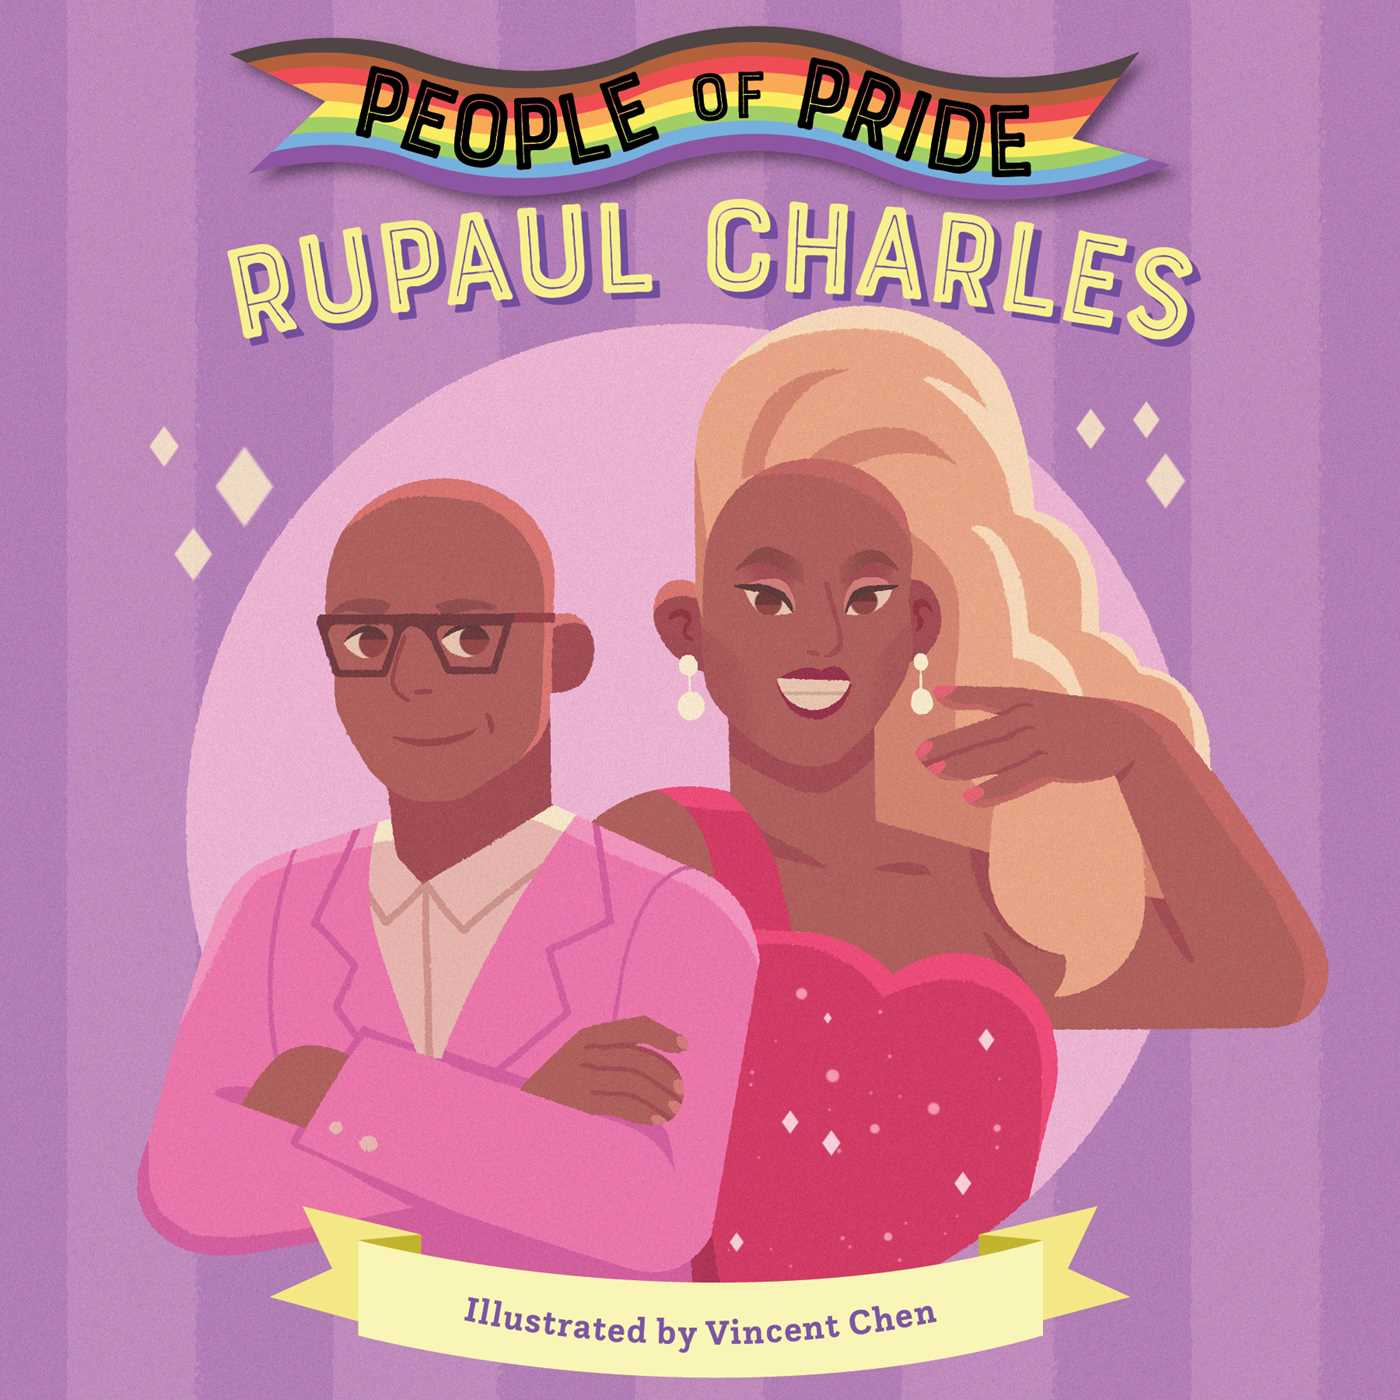 Picture of RuPaul Charles